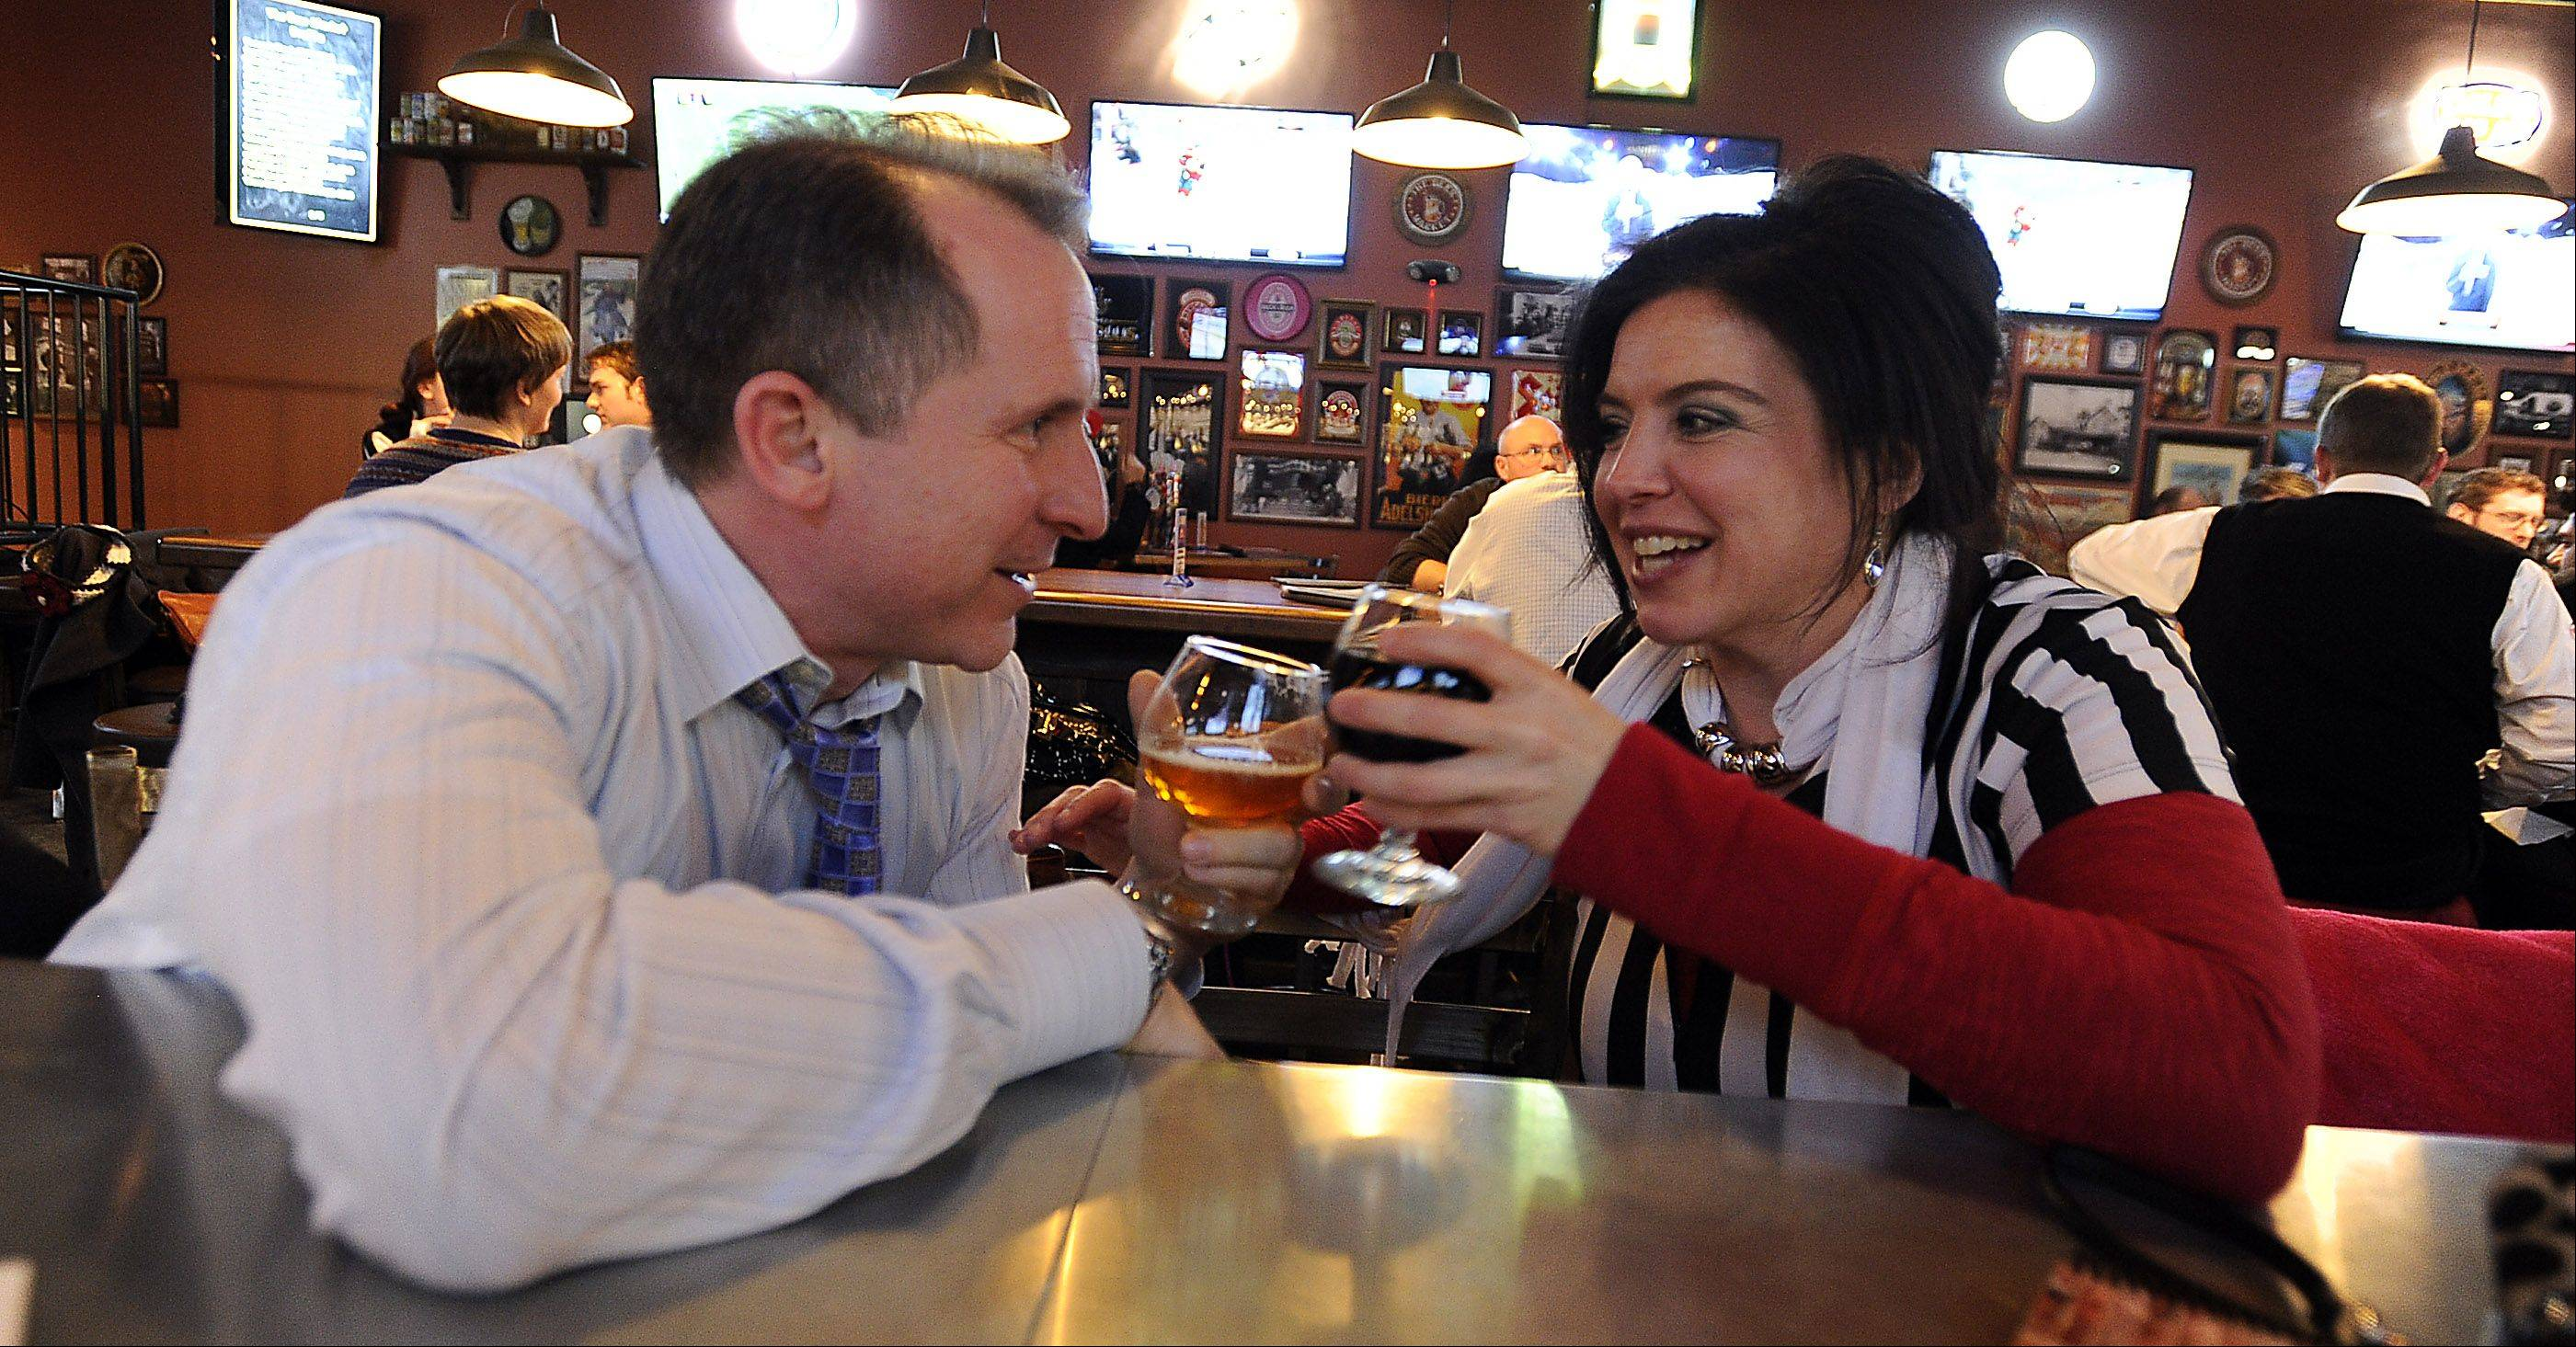 Tony Calvaretta of Schaumburg and Laura Quintero of Carpentersville sample some of the many offerings at The Beer Market in Schaumburg.